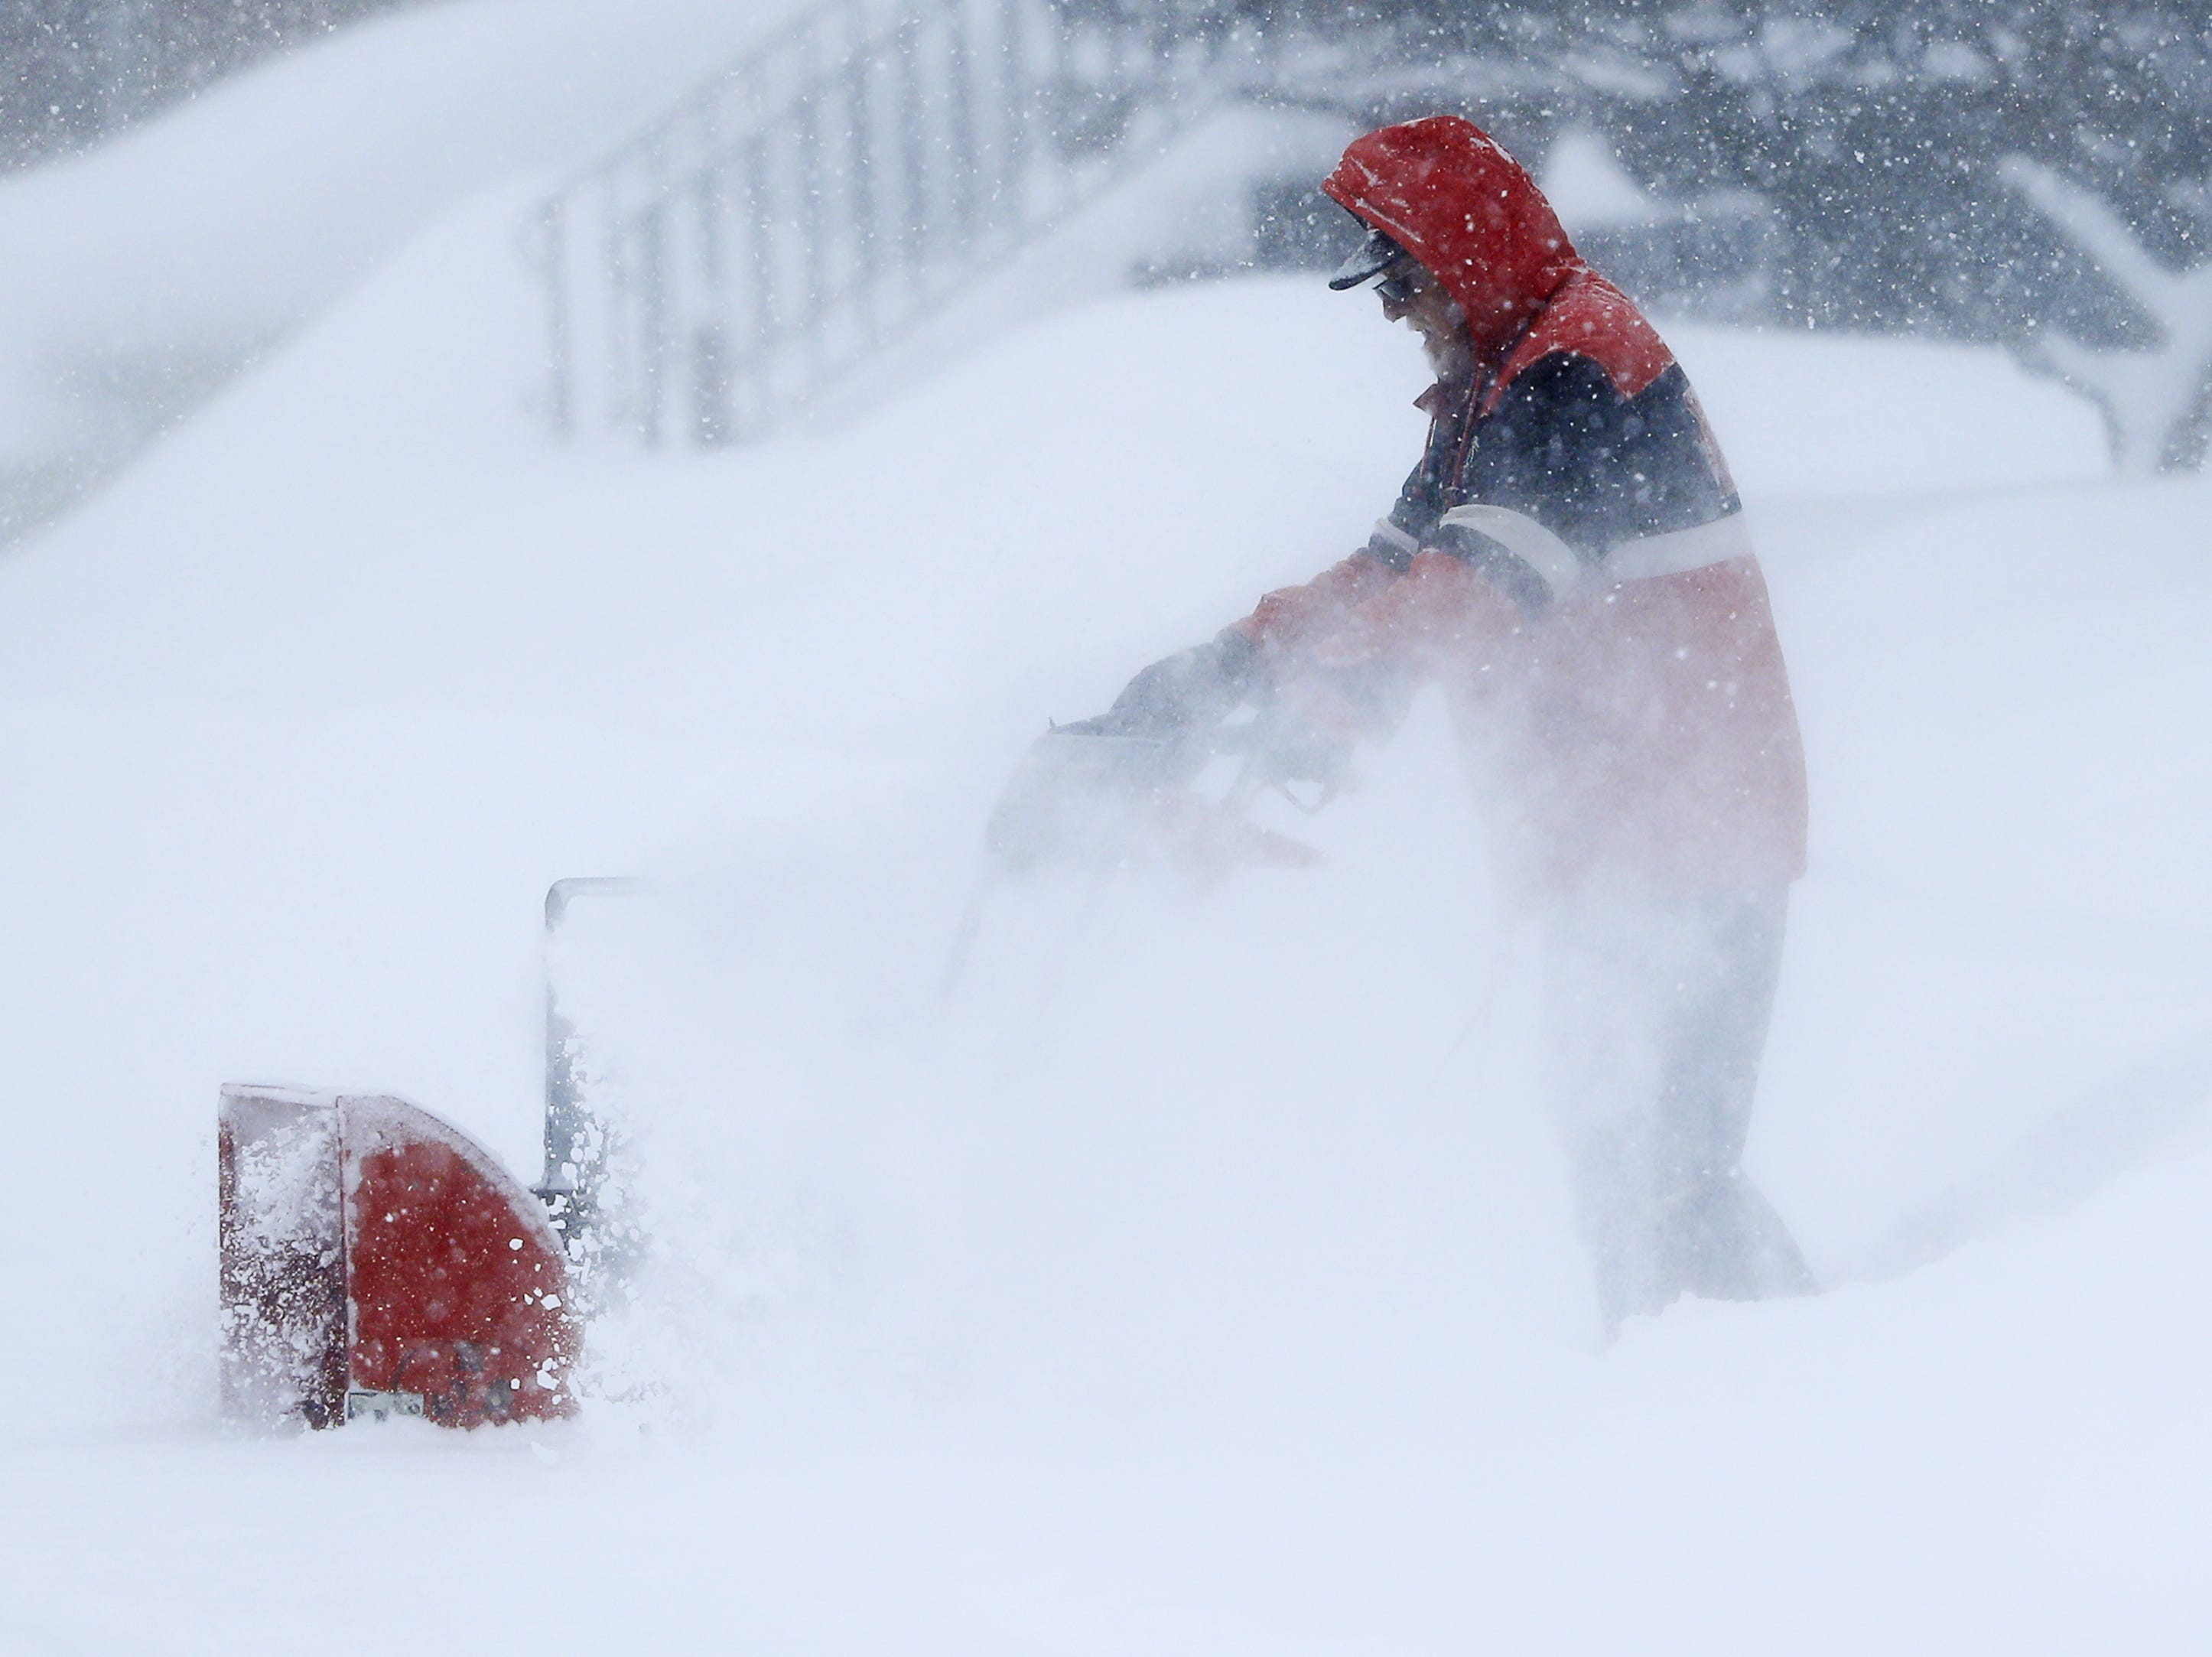 A man uses a snowblower during a snowstorm on Monday, Jan. 28, 2019, in Green Bay, Wis.